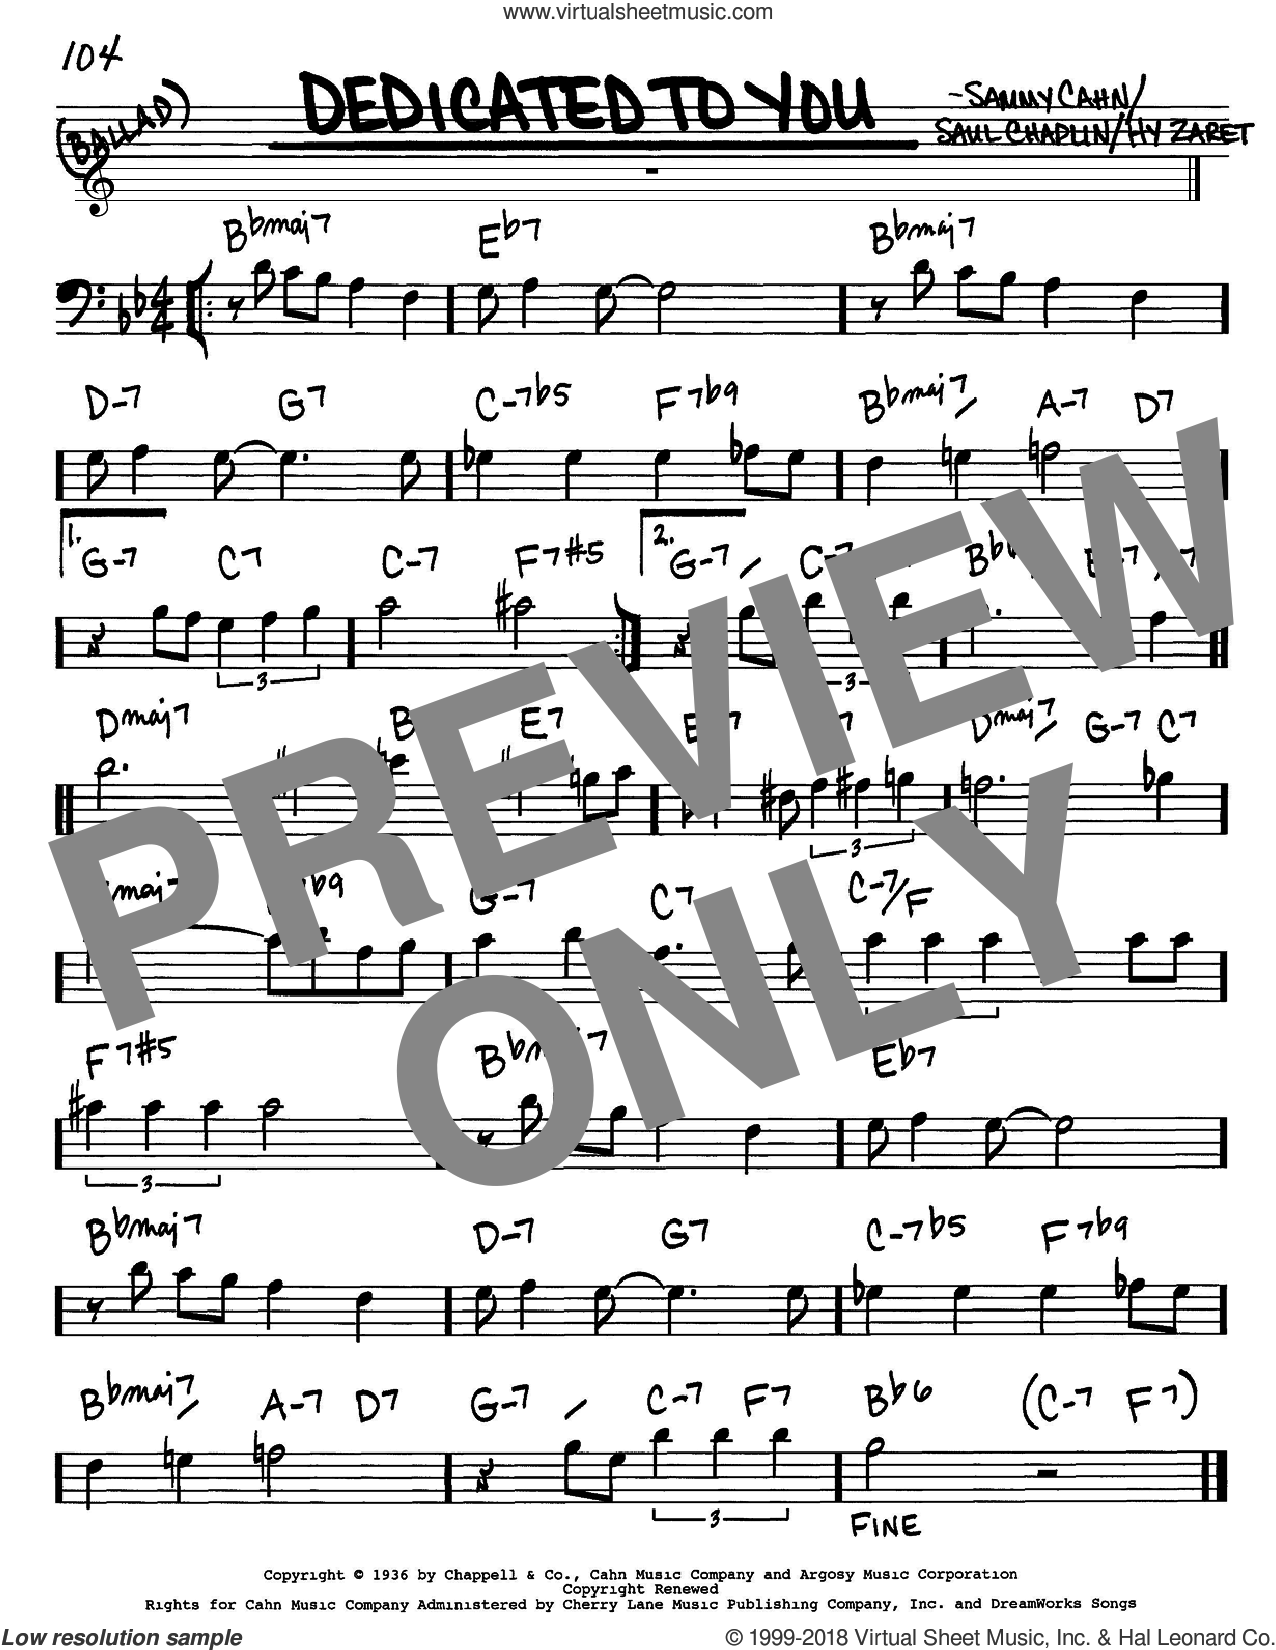 Dedicated To You sheet music for voice and other instruments (bass clef) by Sammy Cahn, Hy Zaret and Saul Chaplin, intermediate skill level